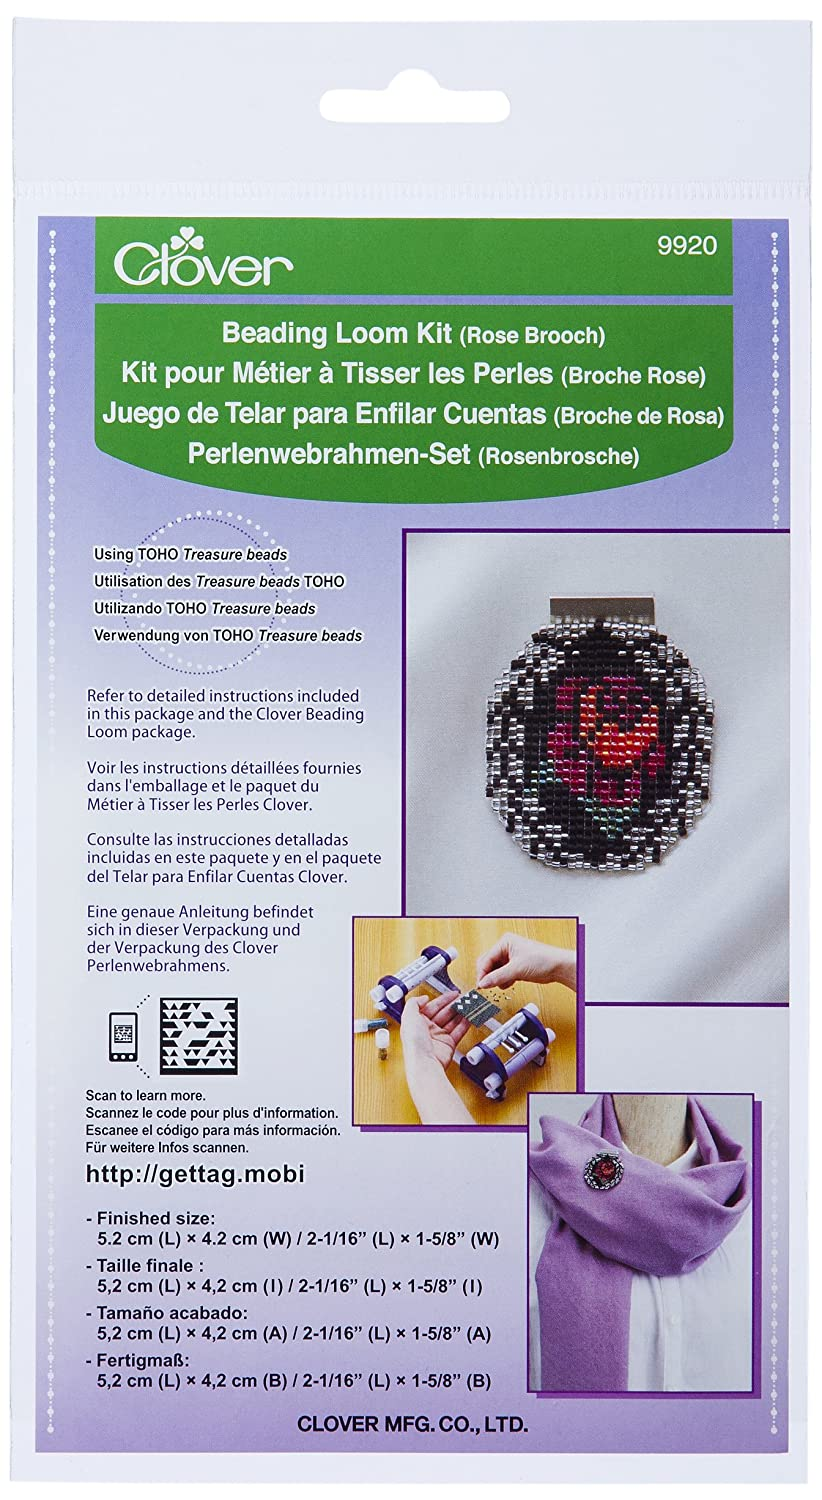 Clover 9920 Beading Loom Kit/Rose Brooch CLOVER MFG. CO. LTD.